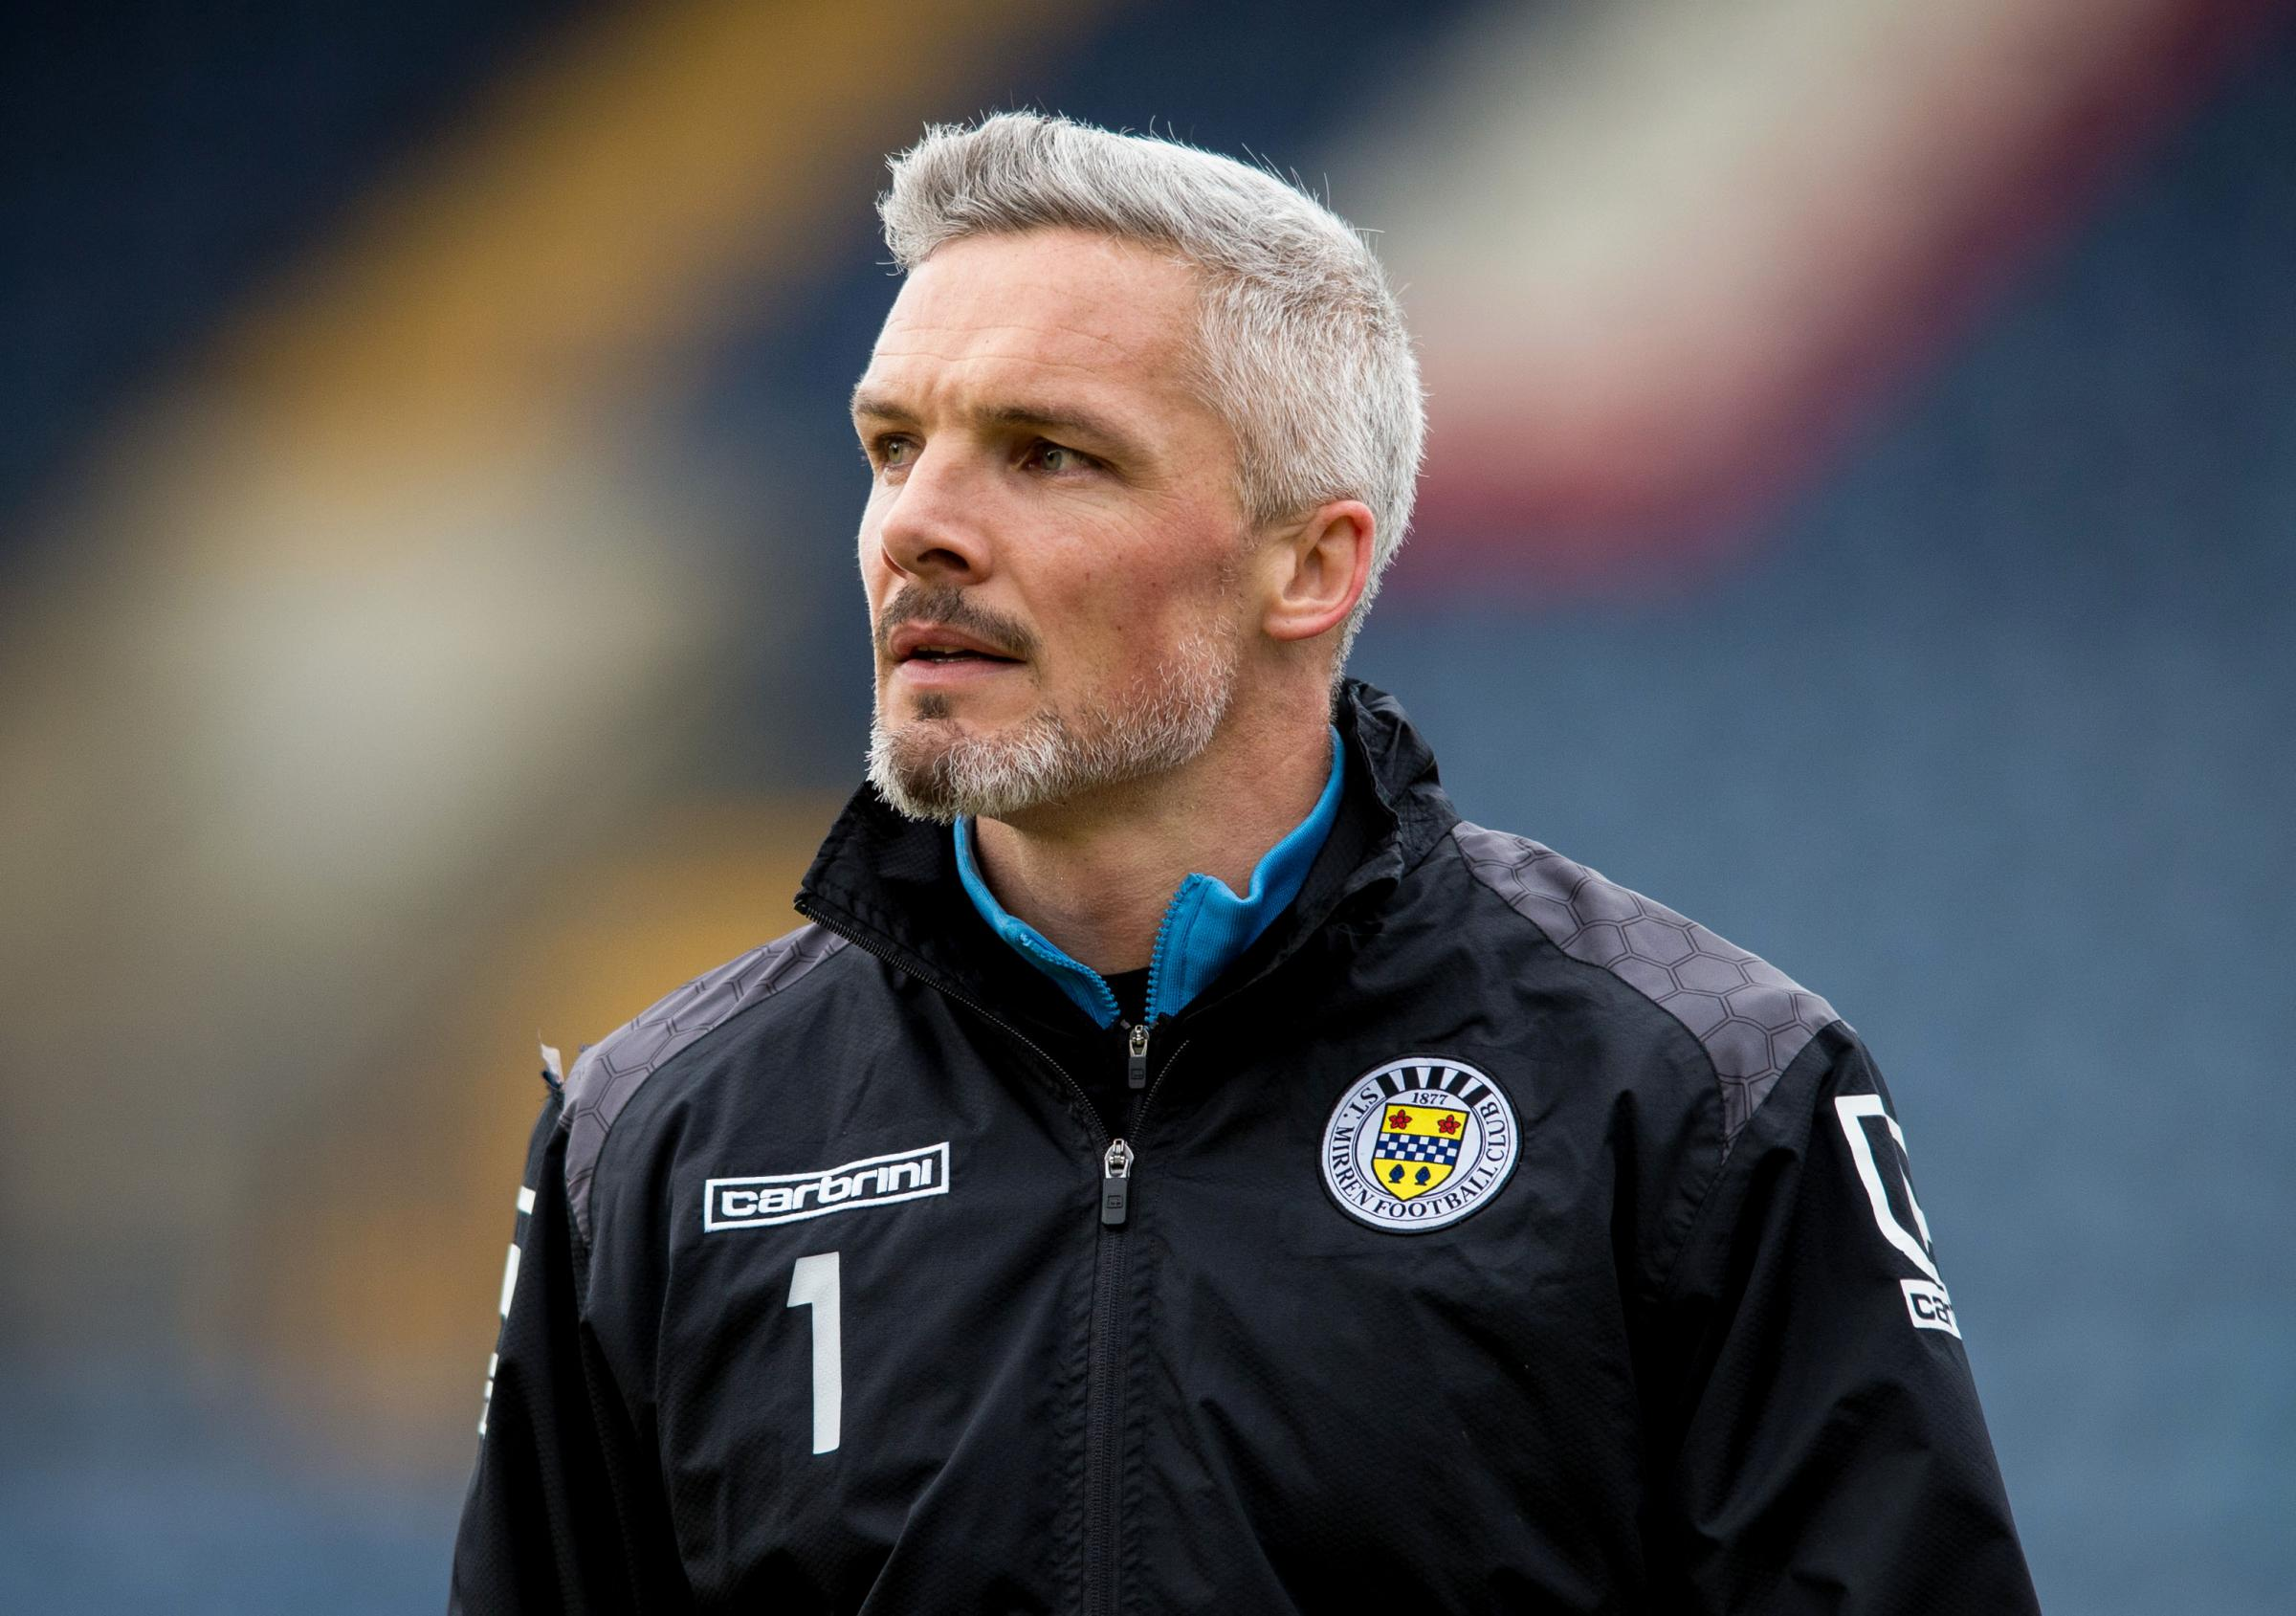 St Mirren boss Jim Goodwin daring to dream of Scottish Cup glory after 2013 Betfred Cup win